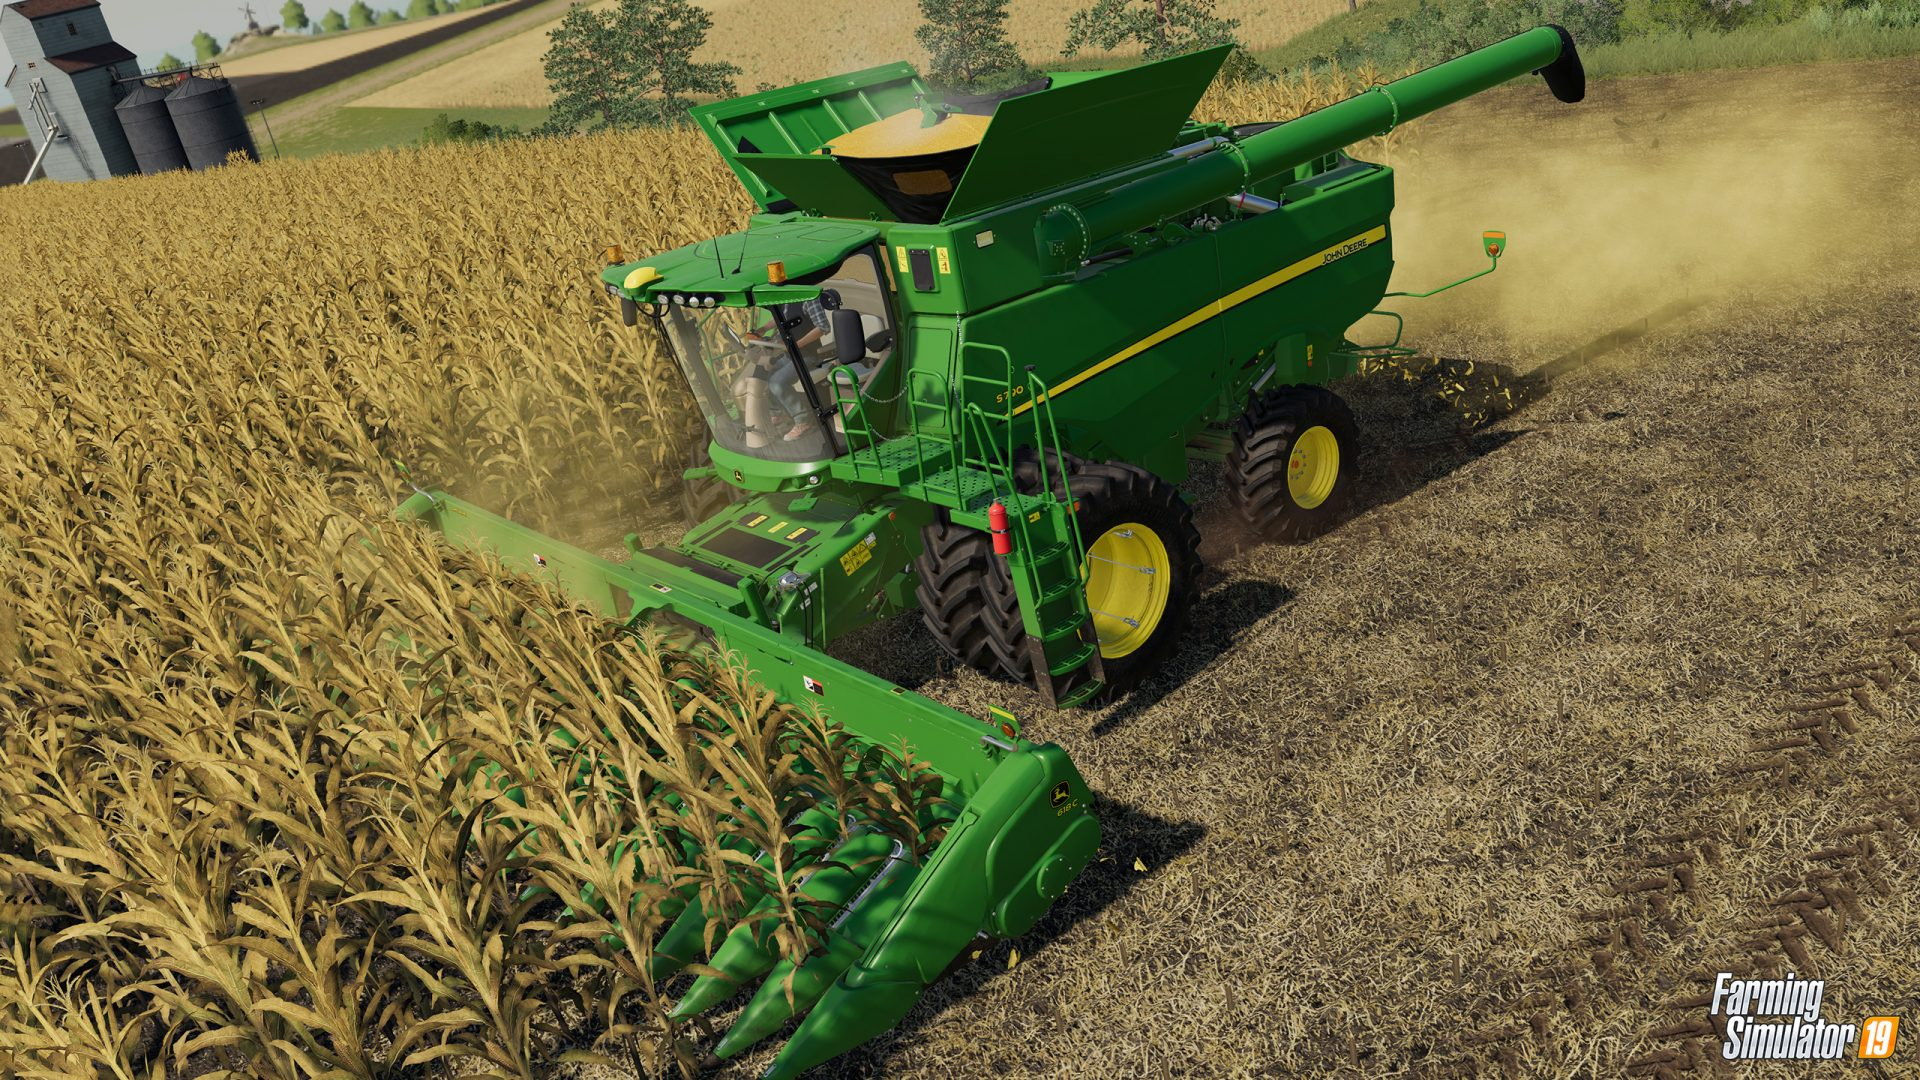 Farming Simulator 19: Fact Sheets #23, 24, 25 & 26 | Scholarly Gamers